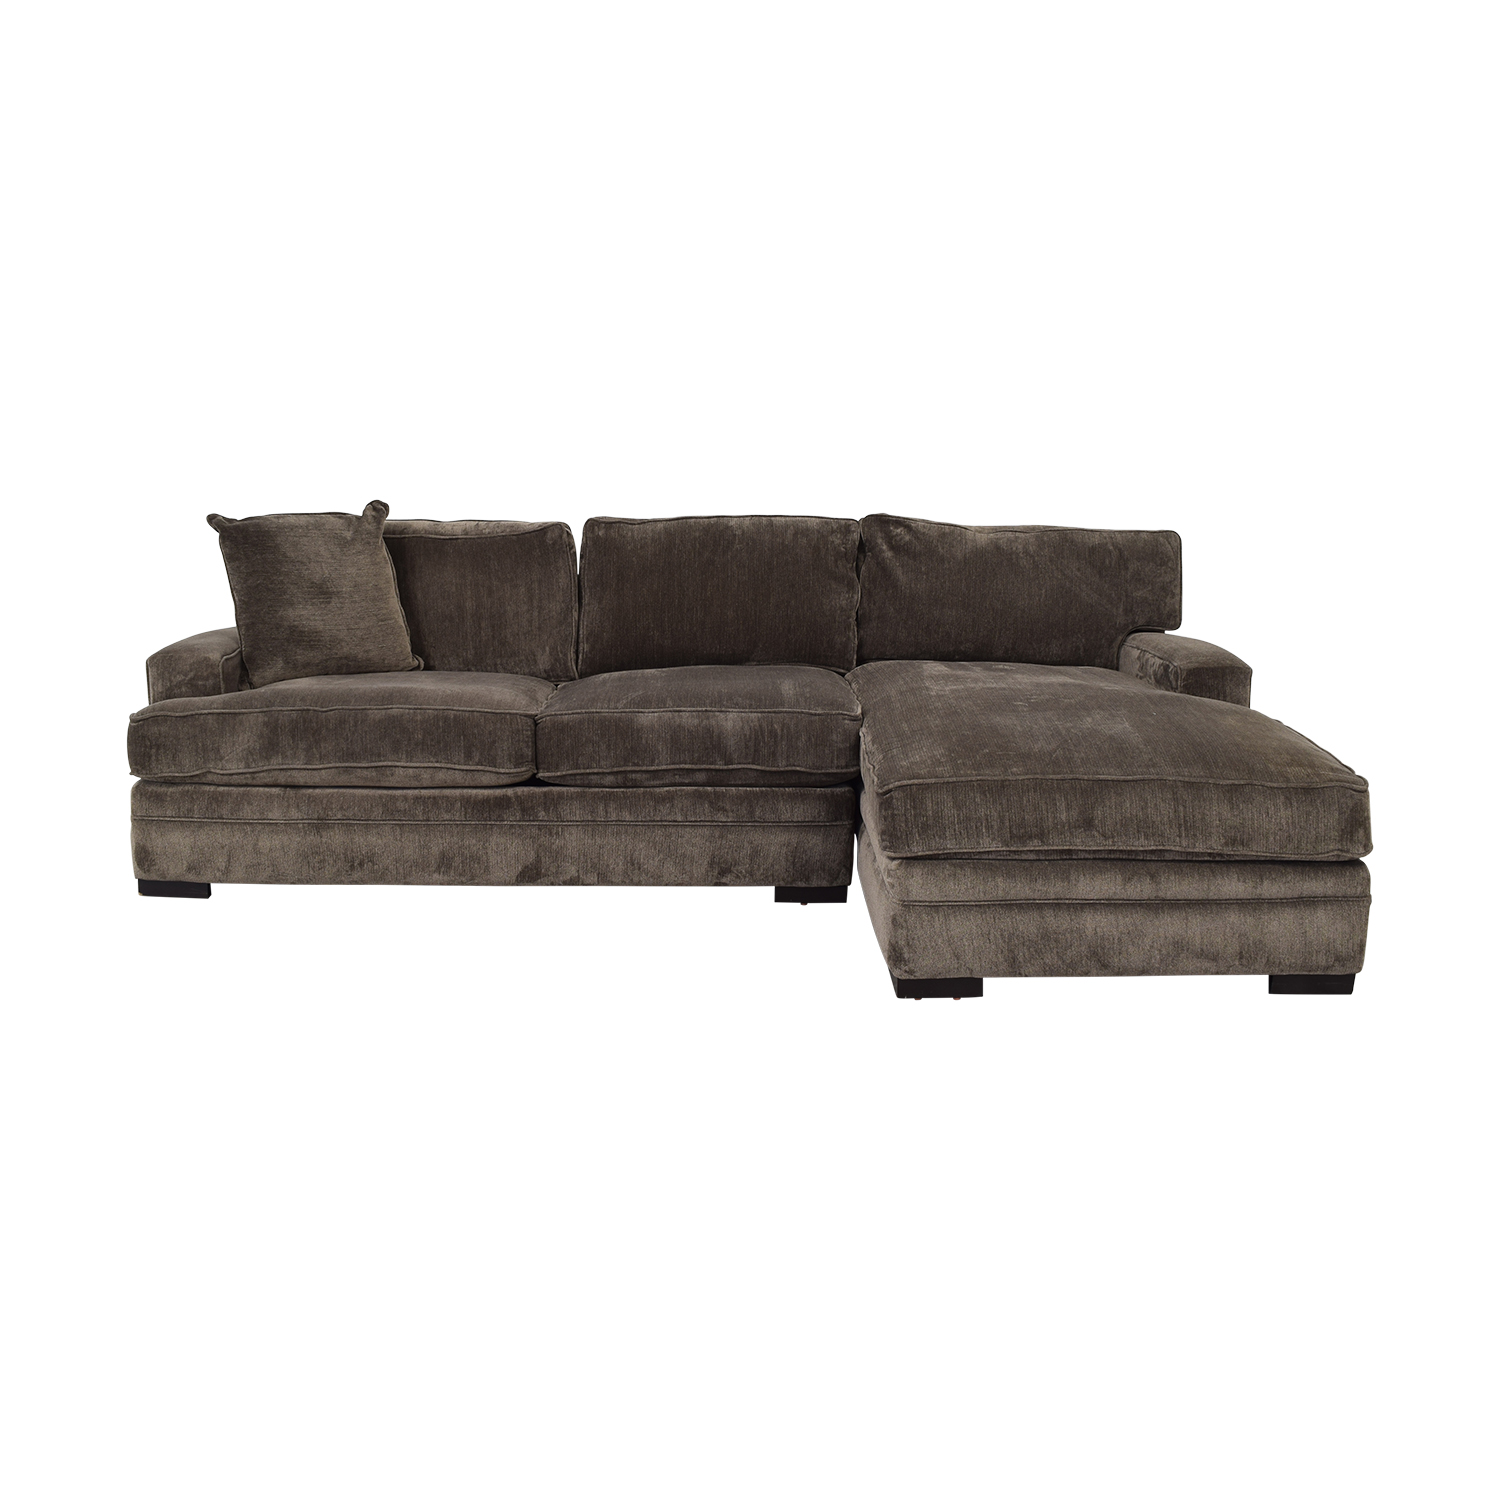 Macy's Macy's Teddy Brown Two Cushion Left Arm Sofa coupon